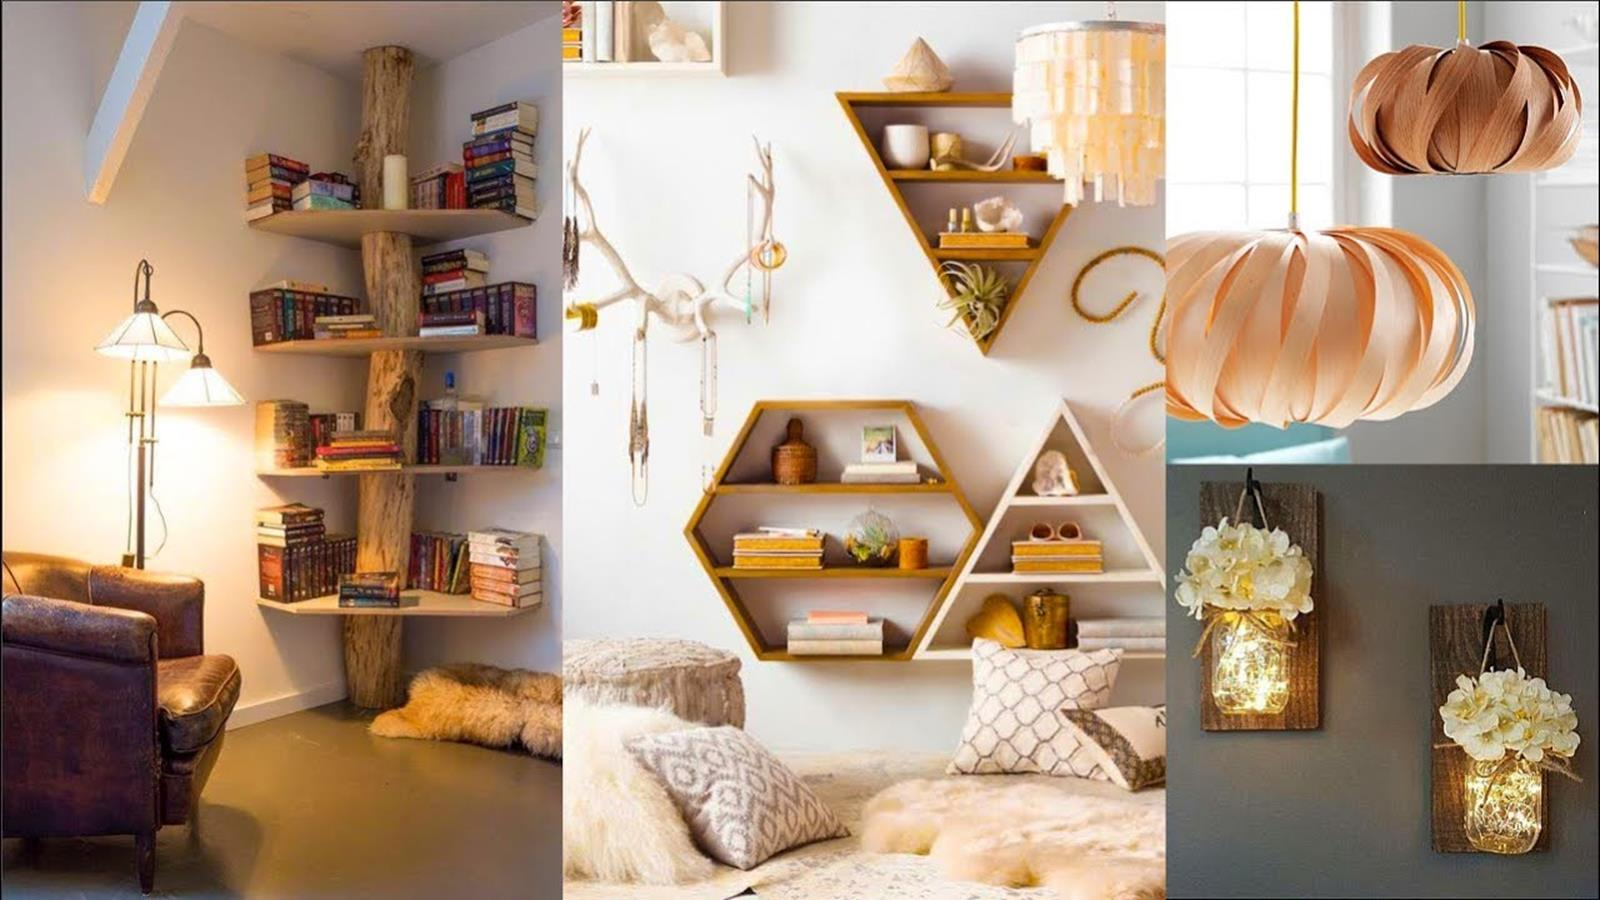 Perfect Bedroom Decorating Idea for Craft 25